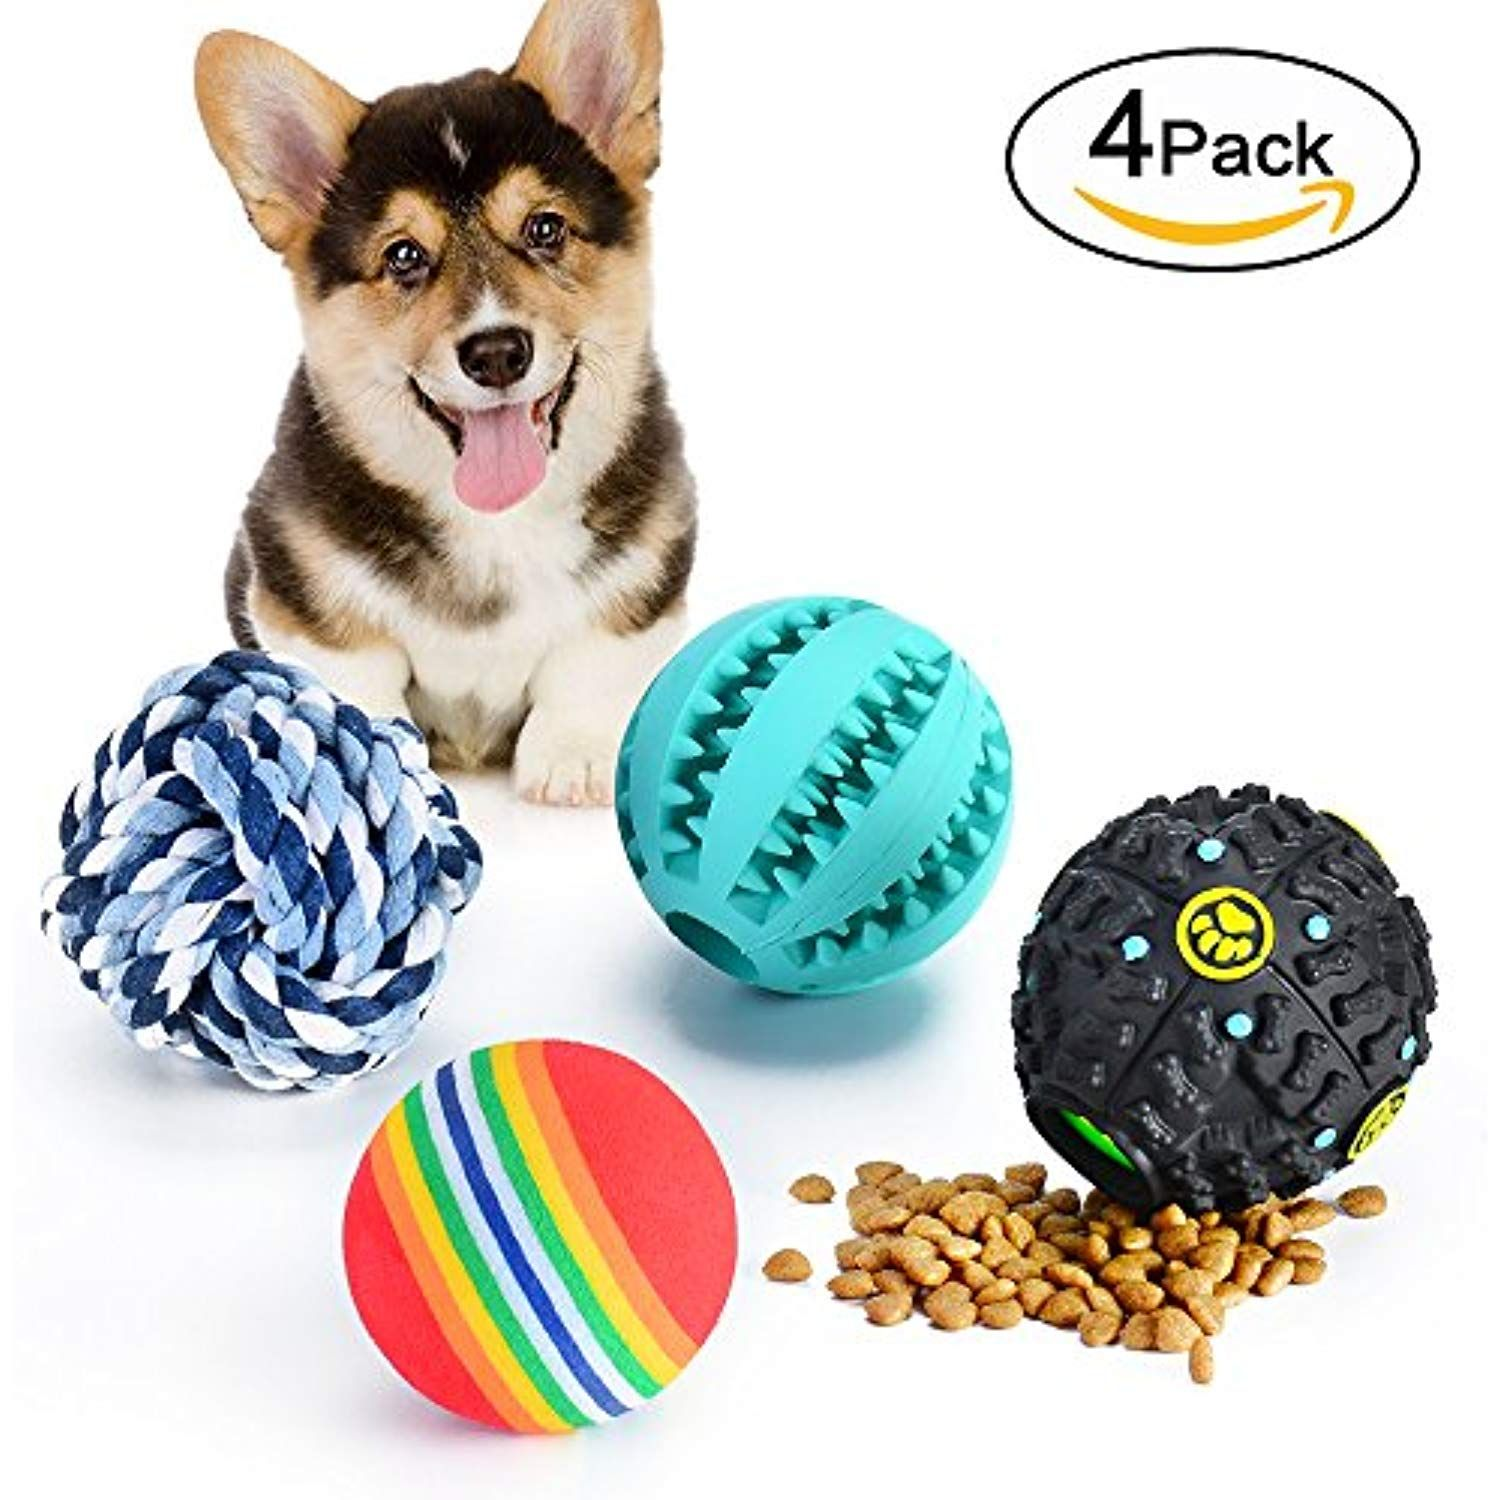 Micion Dog Treat Dispensing Toy Rubber Dog Chew Toy Dog